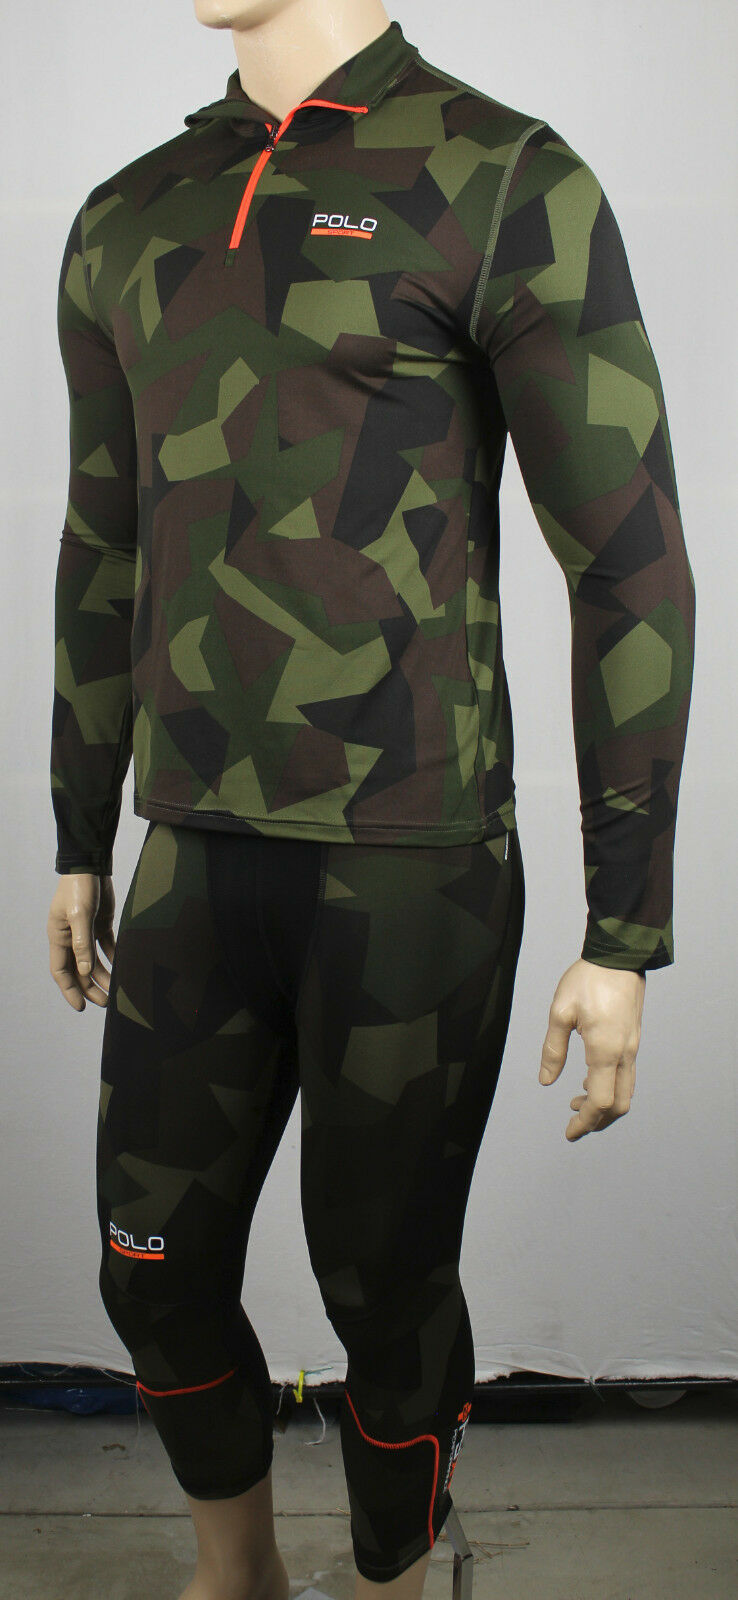 Polo Sport Ralph Lauren Camouflage Compression Running Suit 1/2 Zip NWT 179